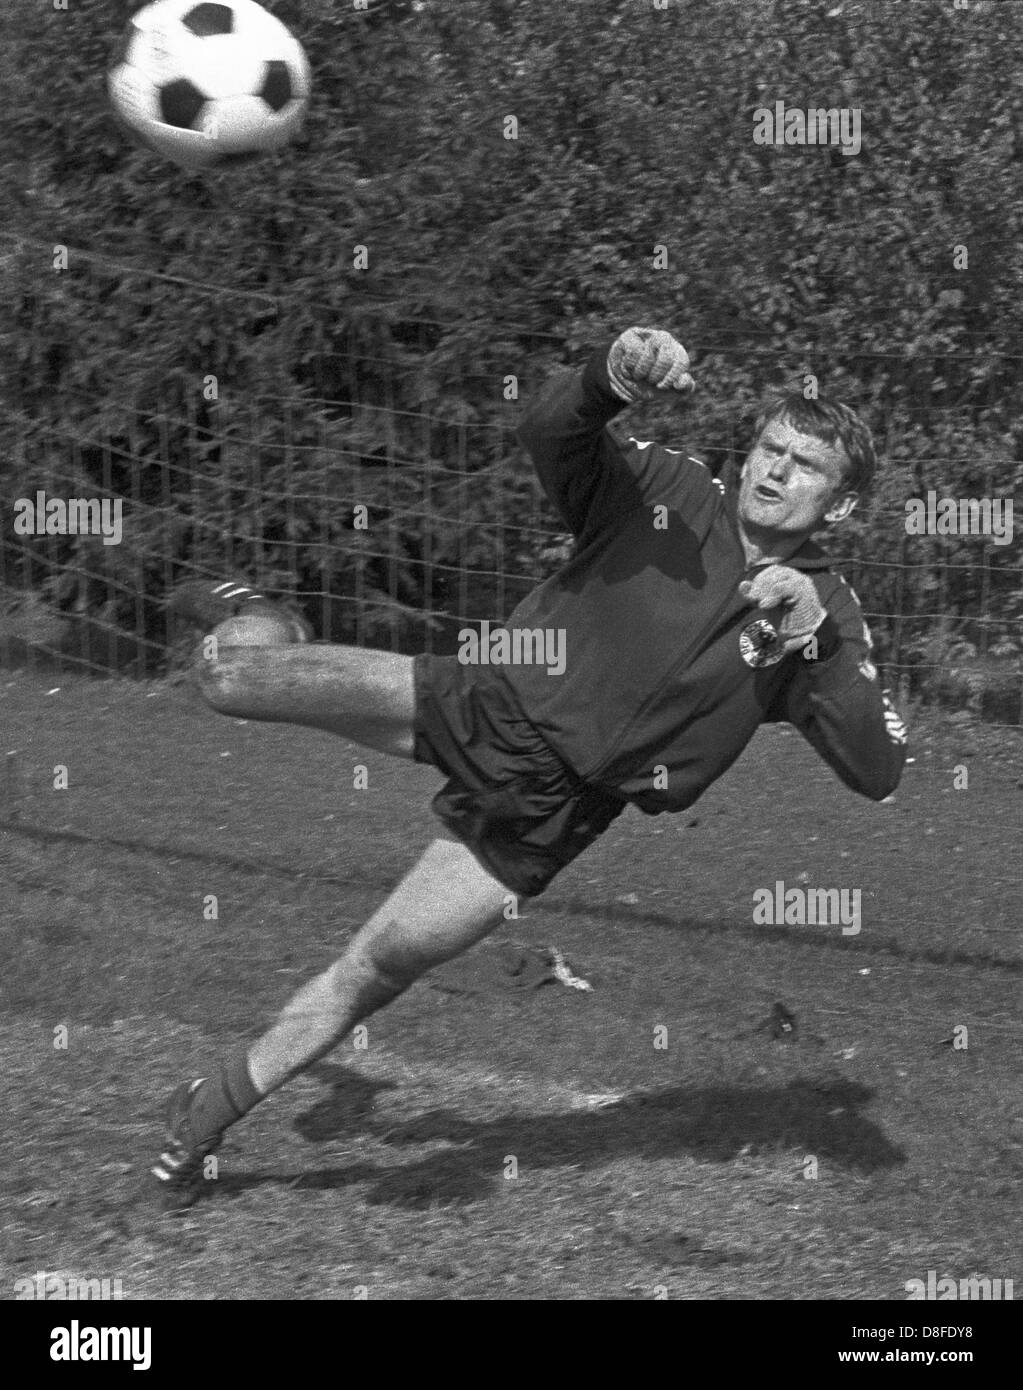 German national goalie Sepp maier in action at the training camp